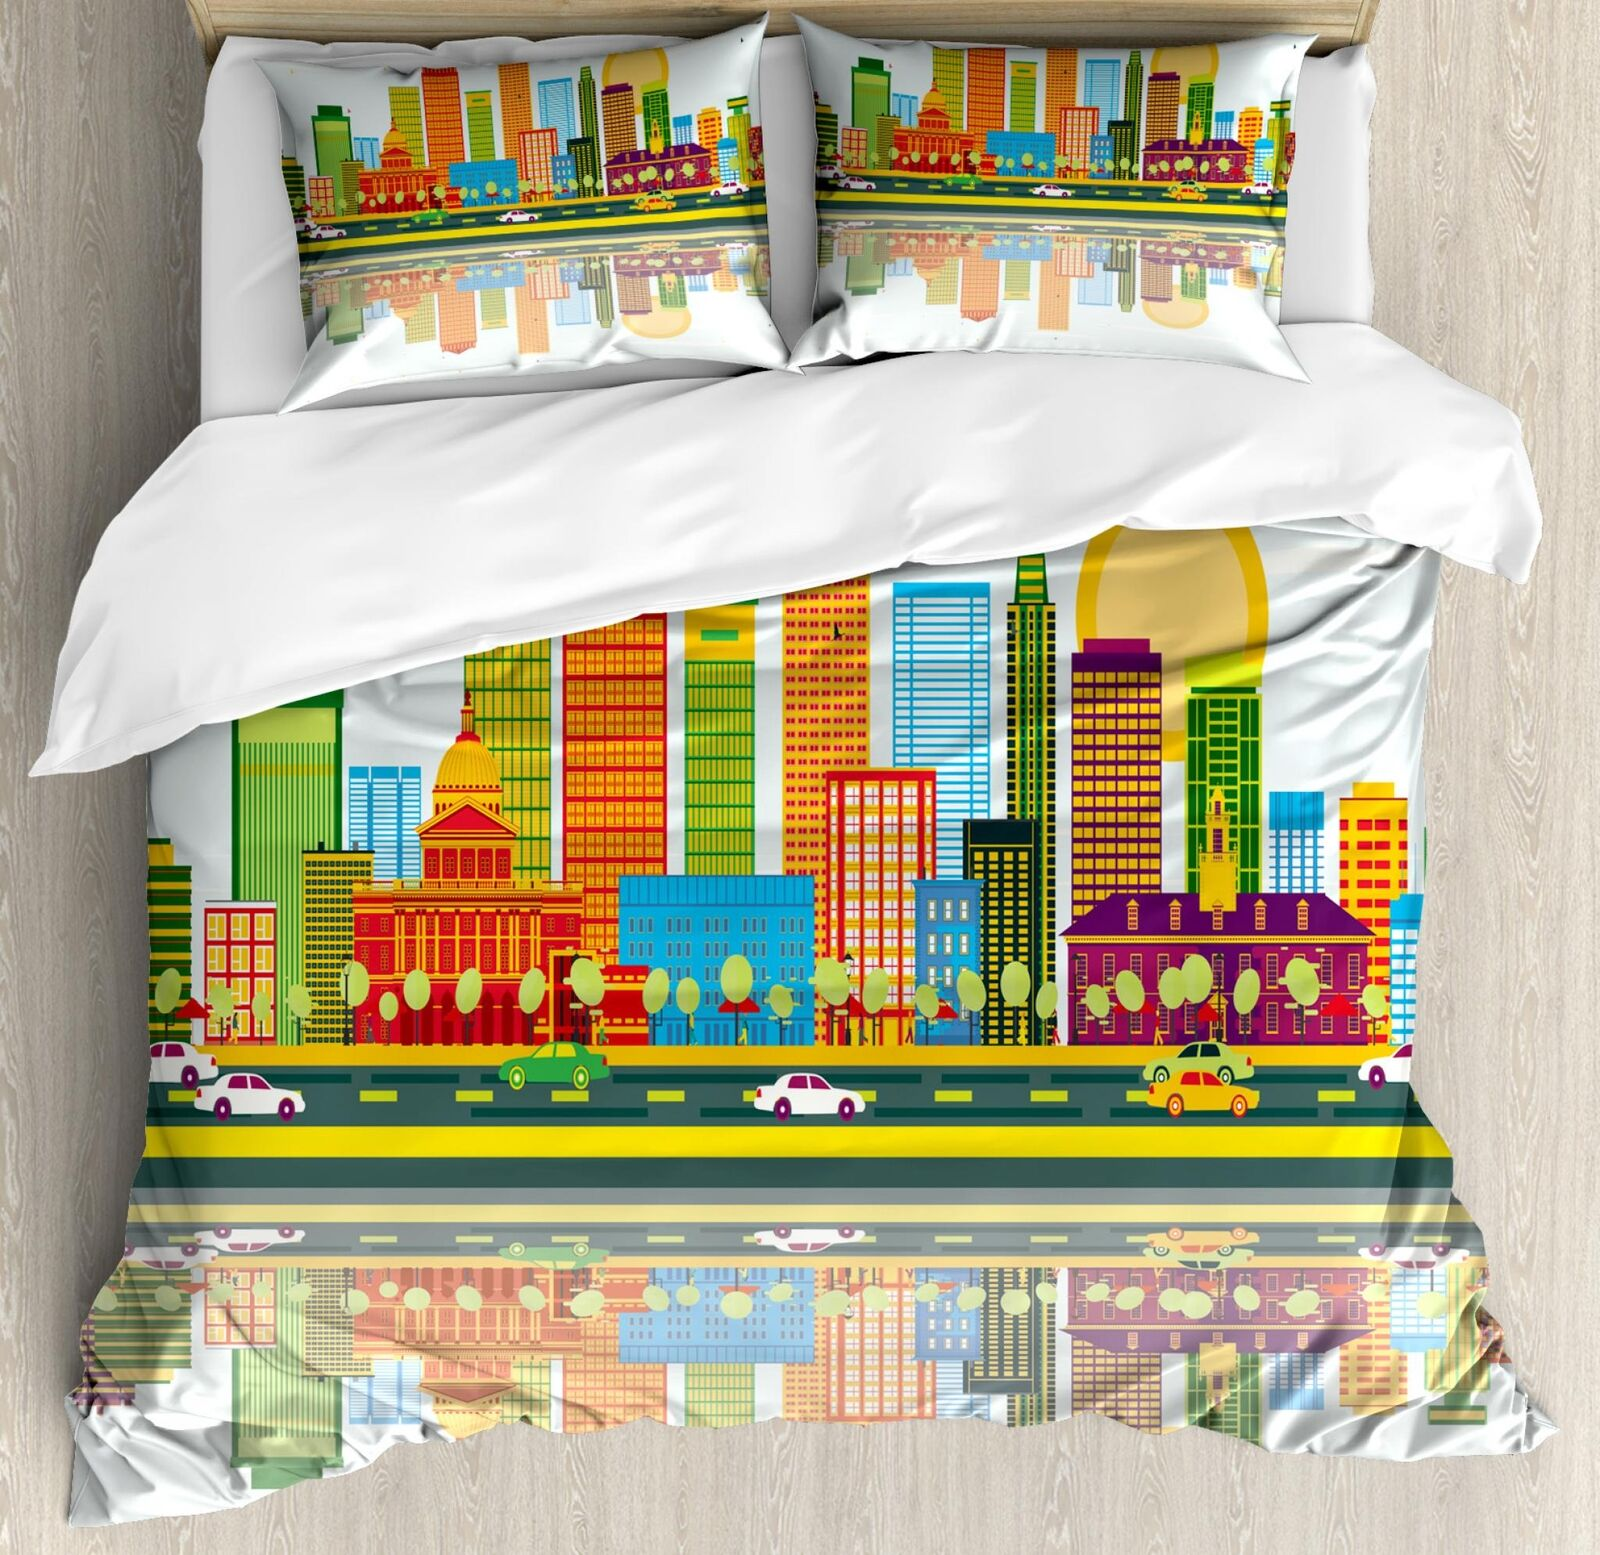 Boston Duvet Cover Set Twin Queen King Größes with Pillow Shams Bedding